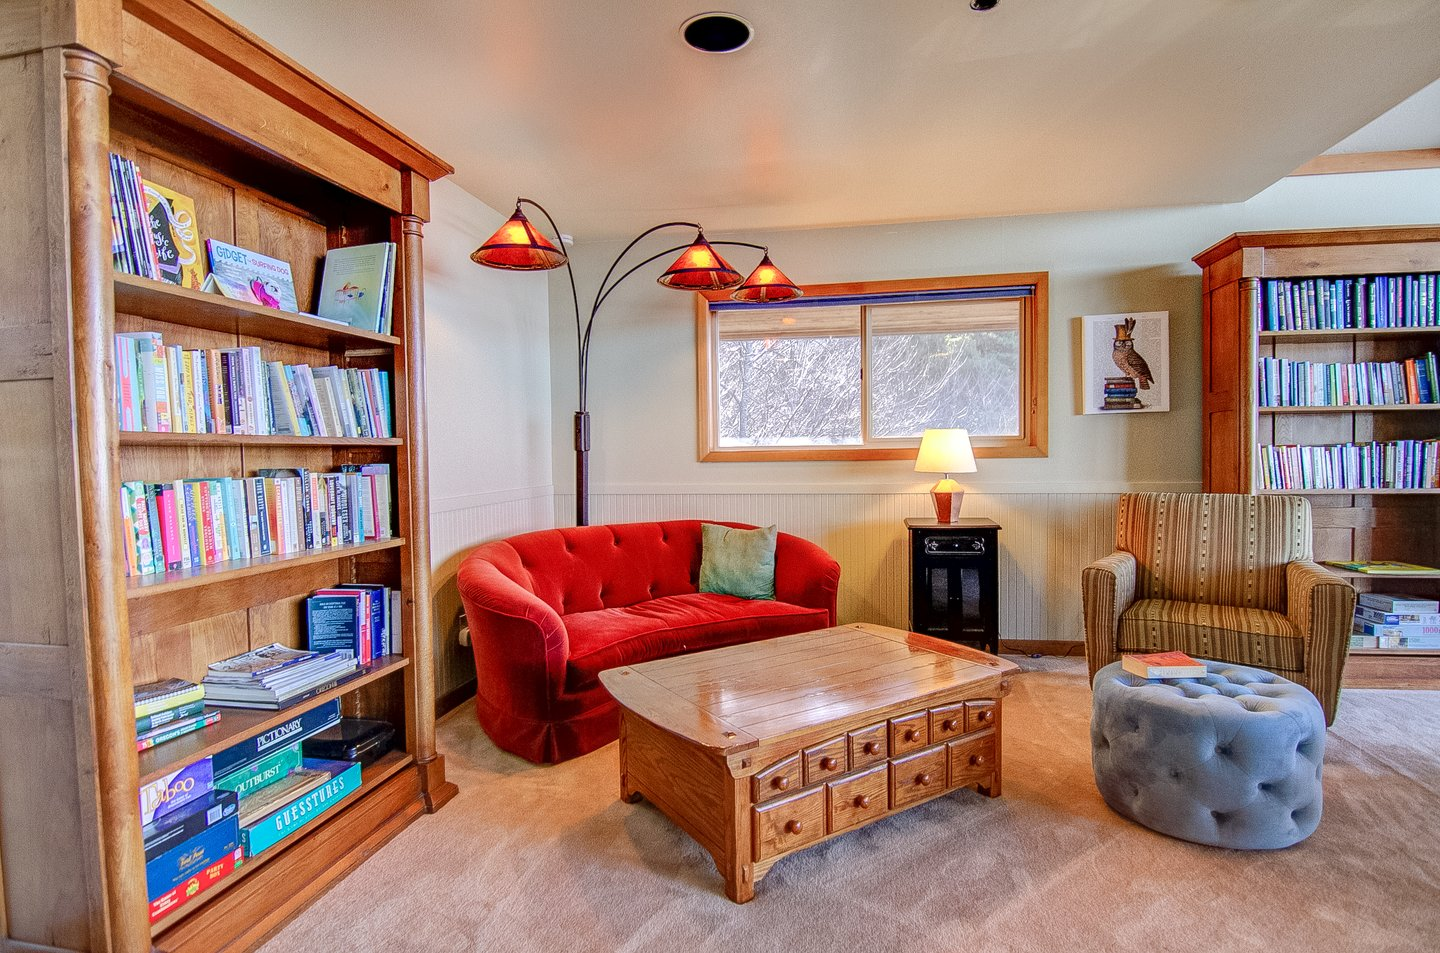 Curl up and read a book in this cozy corner.